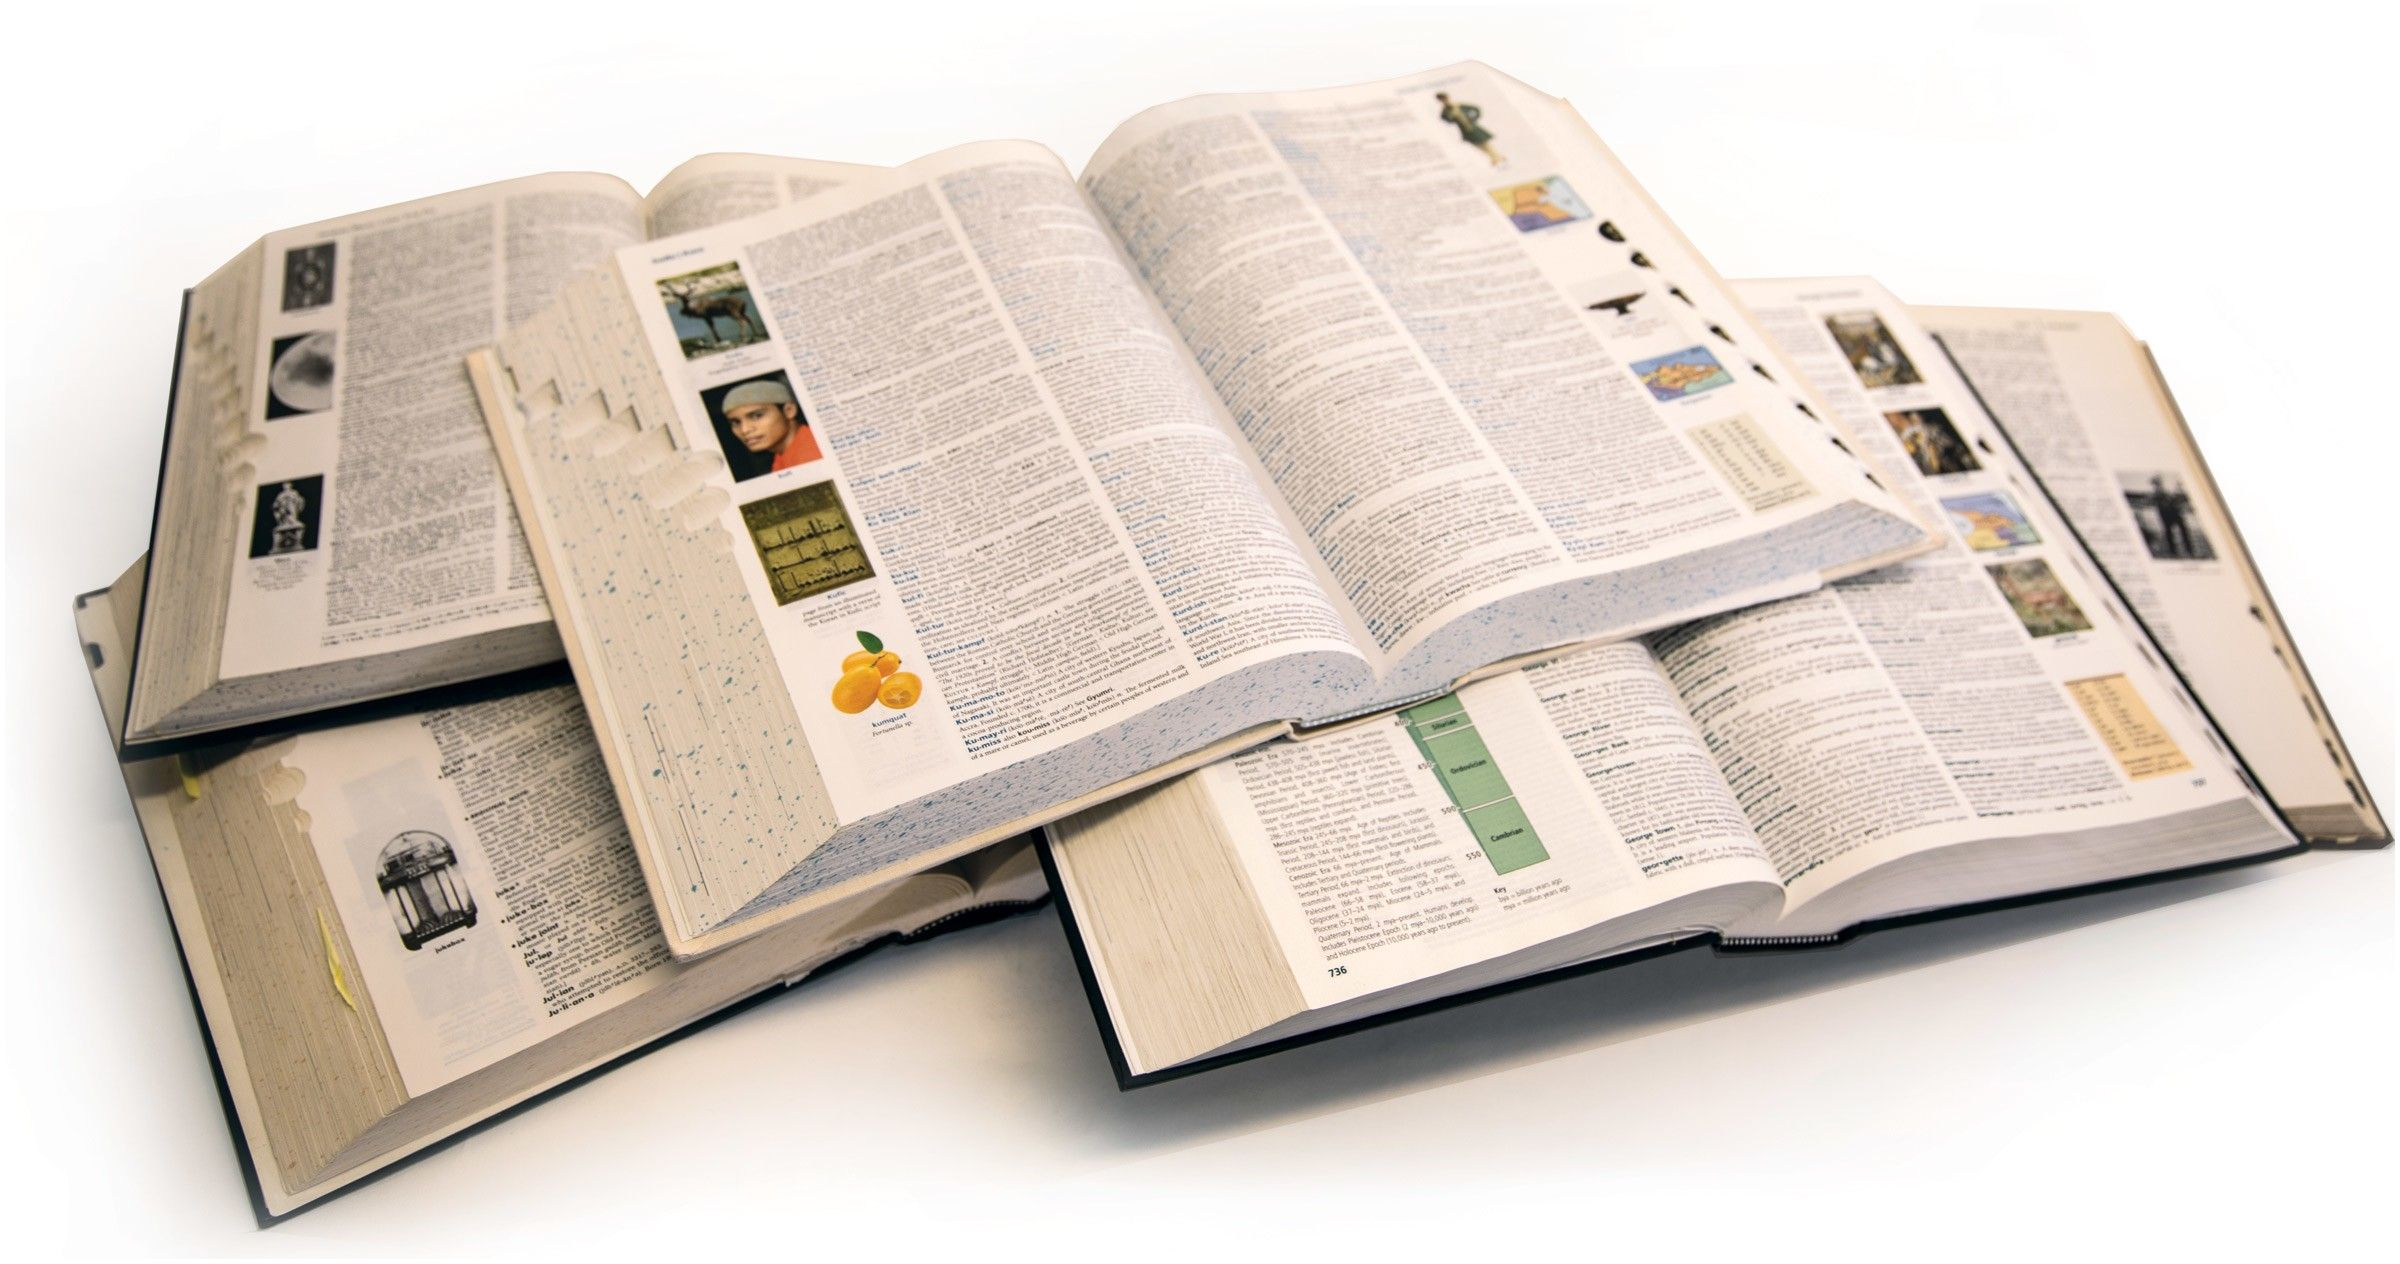 Every edition of the American Heritage Dictionary Color images first appeared in the